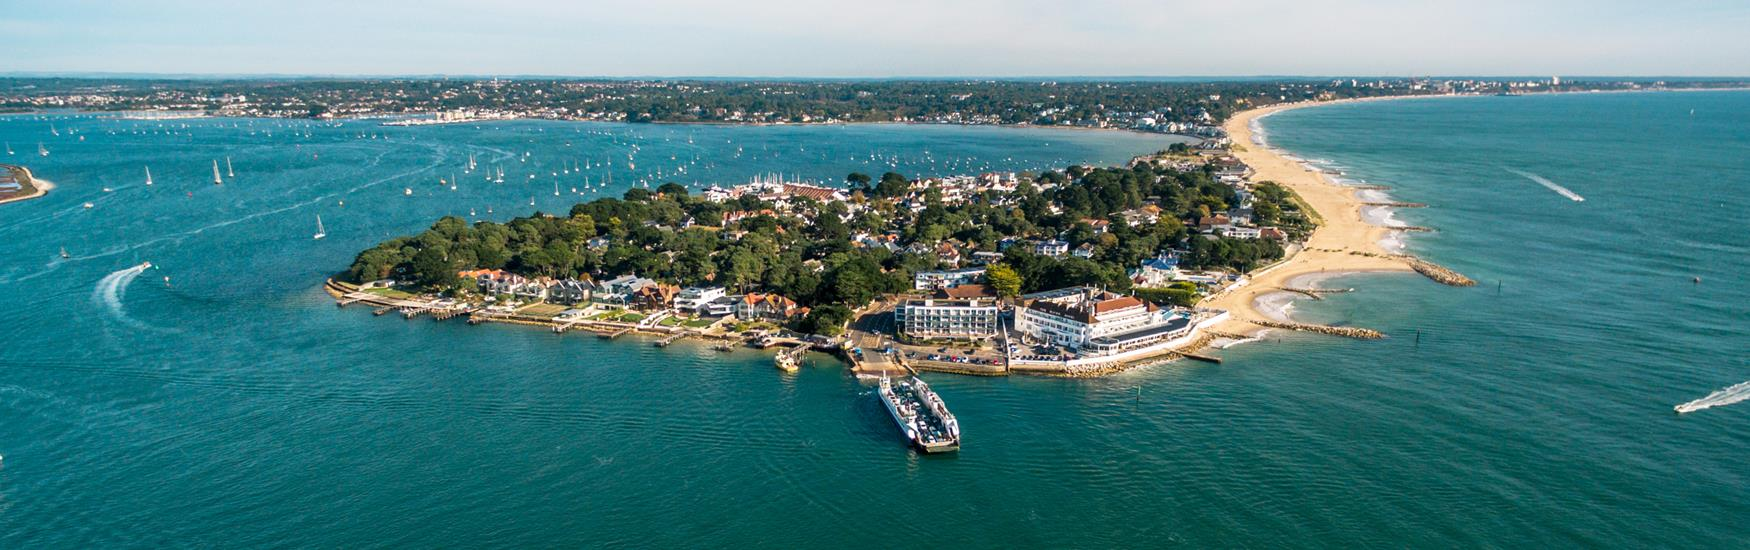 Aerial image of Sandbanks Poole showing the full landscape, the ferry is shown with Poole Harbour and Sandbanks Beaches.